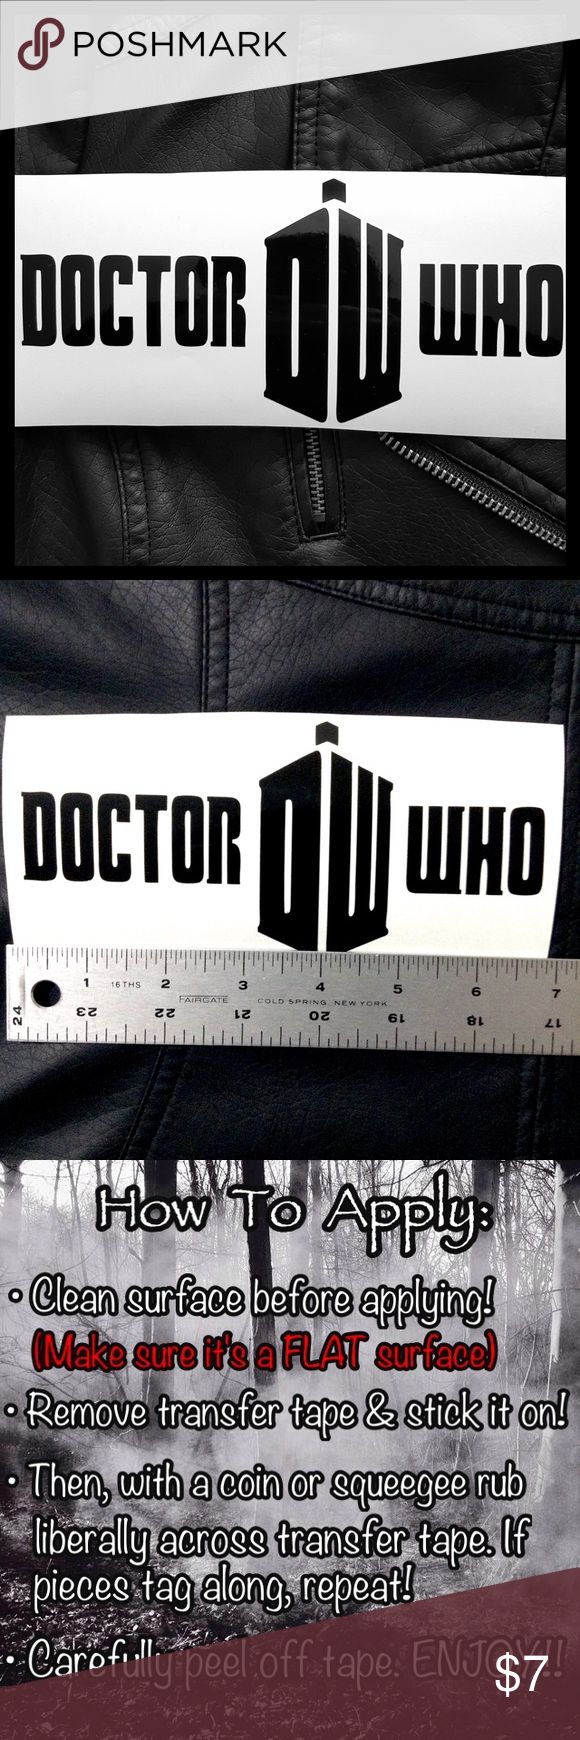 "Doctor Who Tardis Vinyl Decal Sticker •Buy 1 Get 2 FREE Mini Decals🌹| CUSTOM COLOR/ANY SIZE ONLY ON ORDERS OF $8+ Or you can bundle cellphone size decal from ""2 for $7"" listings *approx. width x height* •Doctor Who in BLACK vinyl decal sticker. Works great for cars, windows, laptops, iPads, iPhones, skateboards, Bedroom Wall, fridge, notebook, etc. ✅Guaranteed to be water proof, heat resistance & UV fade resistance. •Homemade by me! •Universe/Britain/Space Hot Topic Accessories"